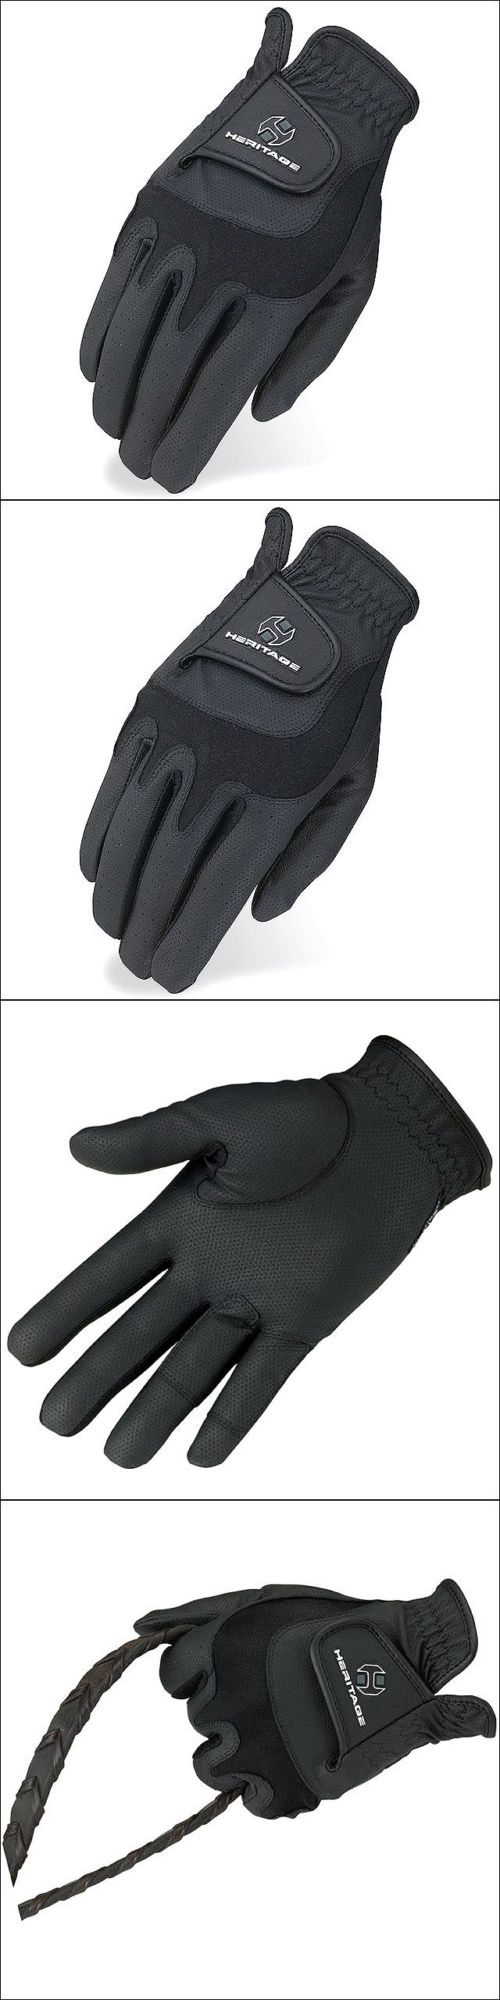 Ladies leather horse riding gloves - Riding Gloves 95104 11 Size Heritage Elite Show Horse Riding Equestrian Glove Lycra Leather Black